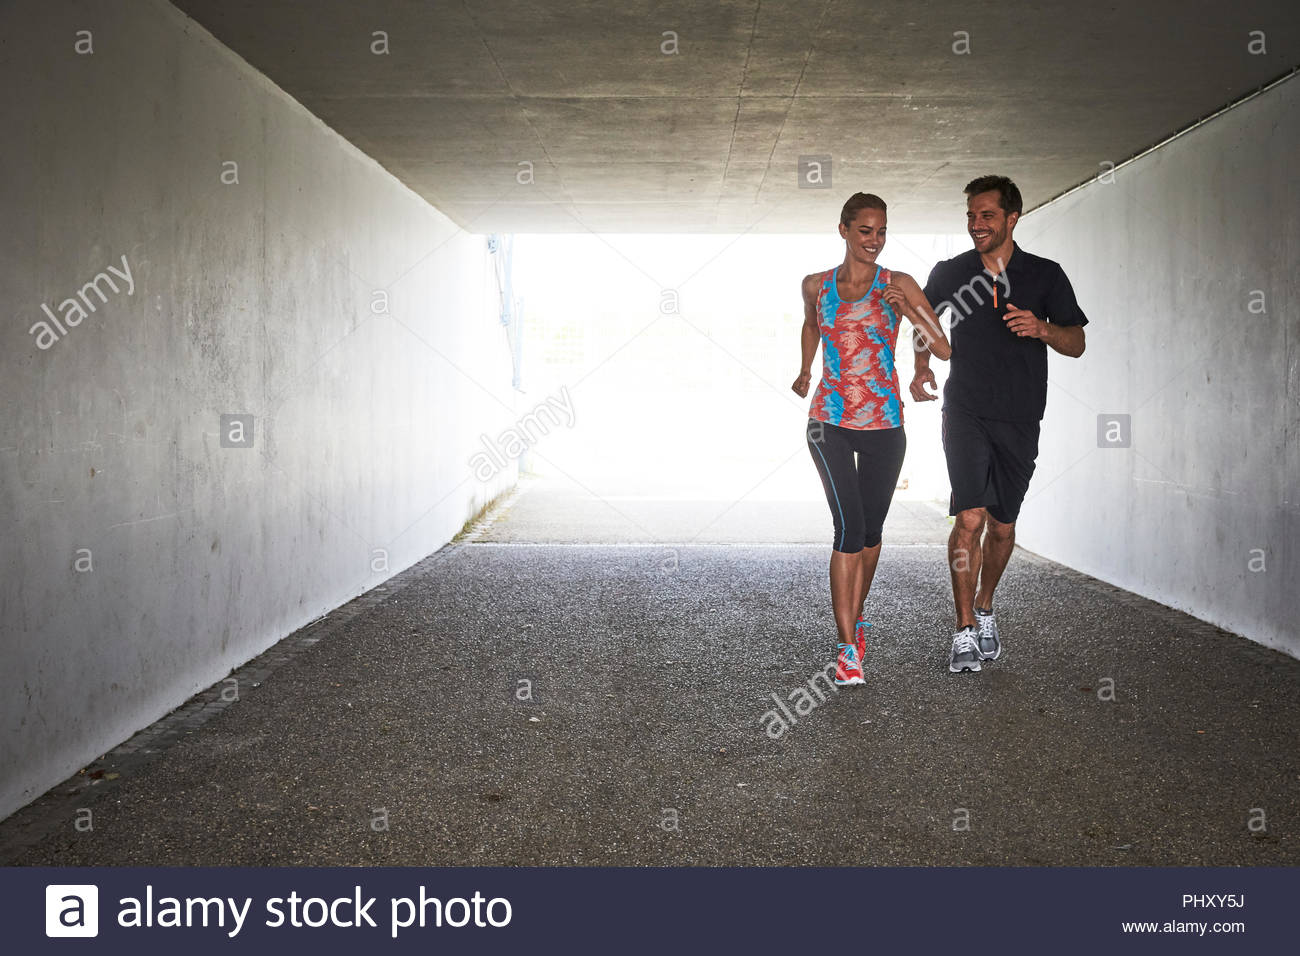 Jeune couple jogging in tunnel Photo Stock